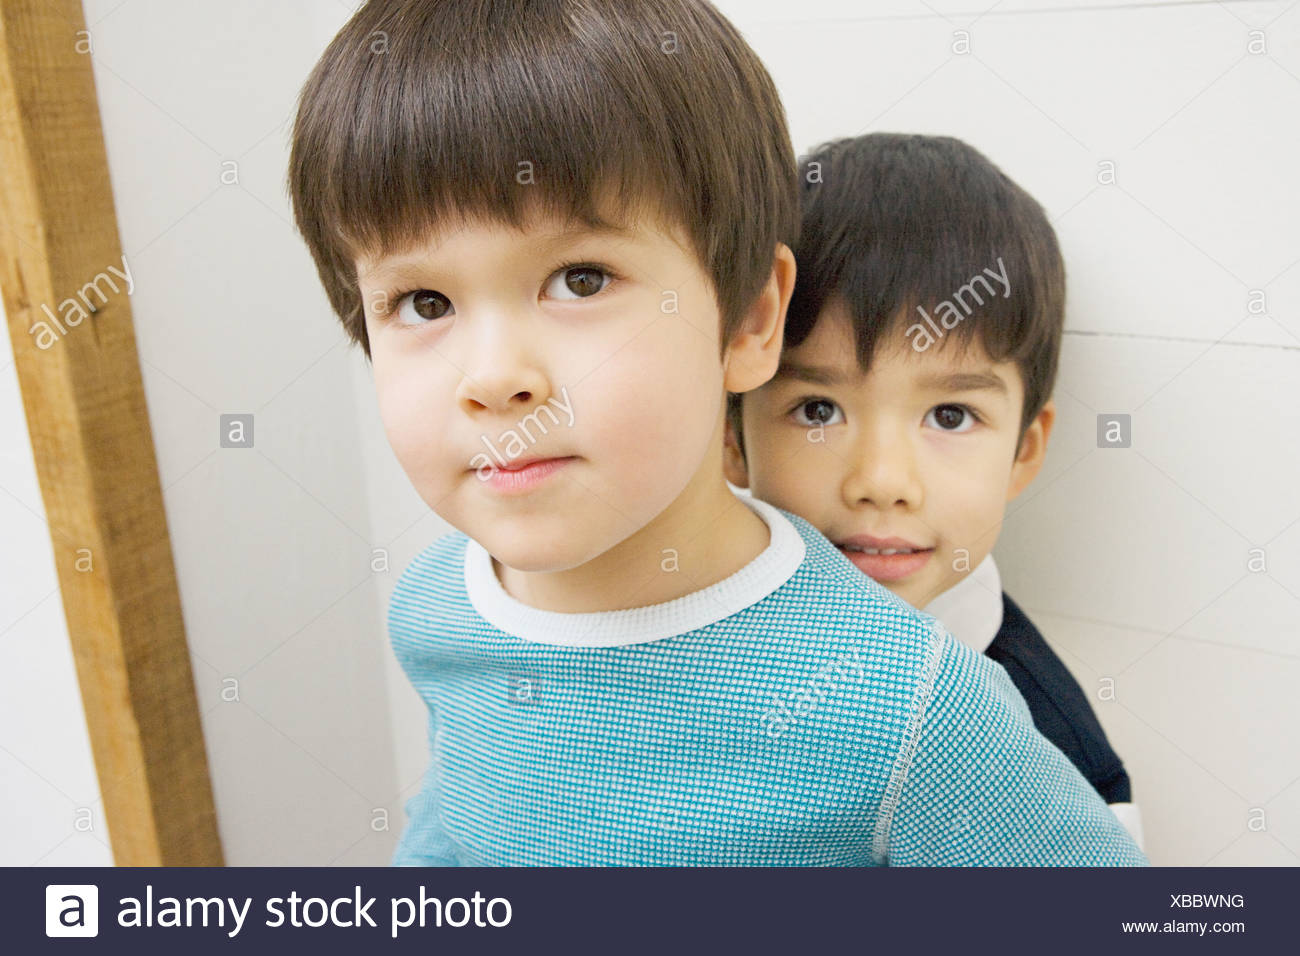 cute asian boys stock photos & cute asian boys stock images - alamy